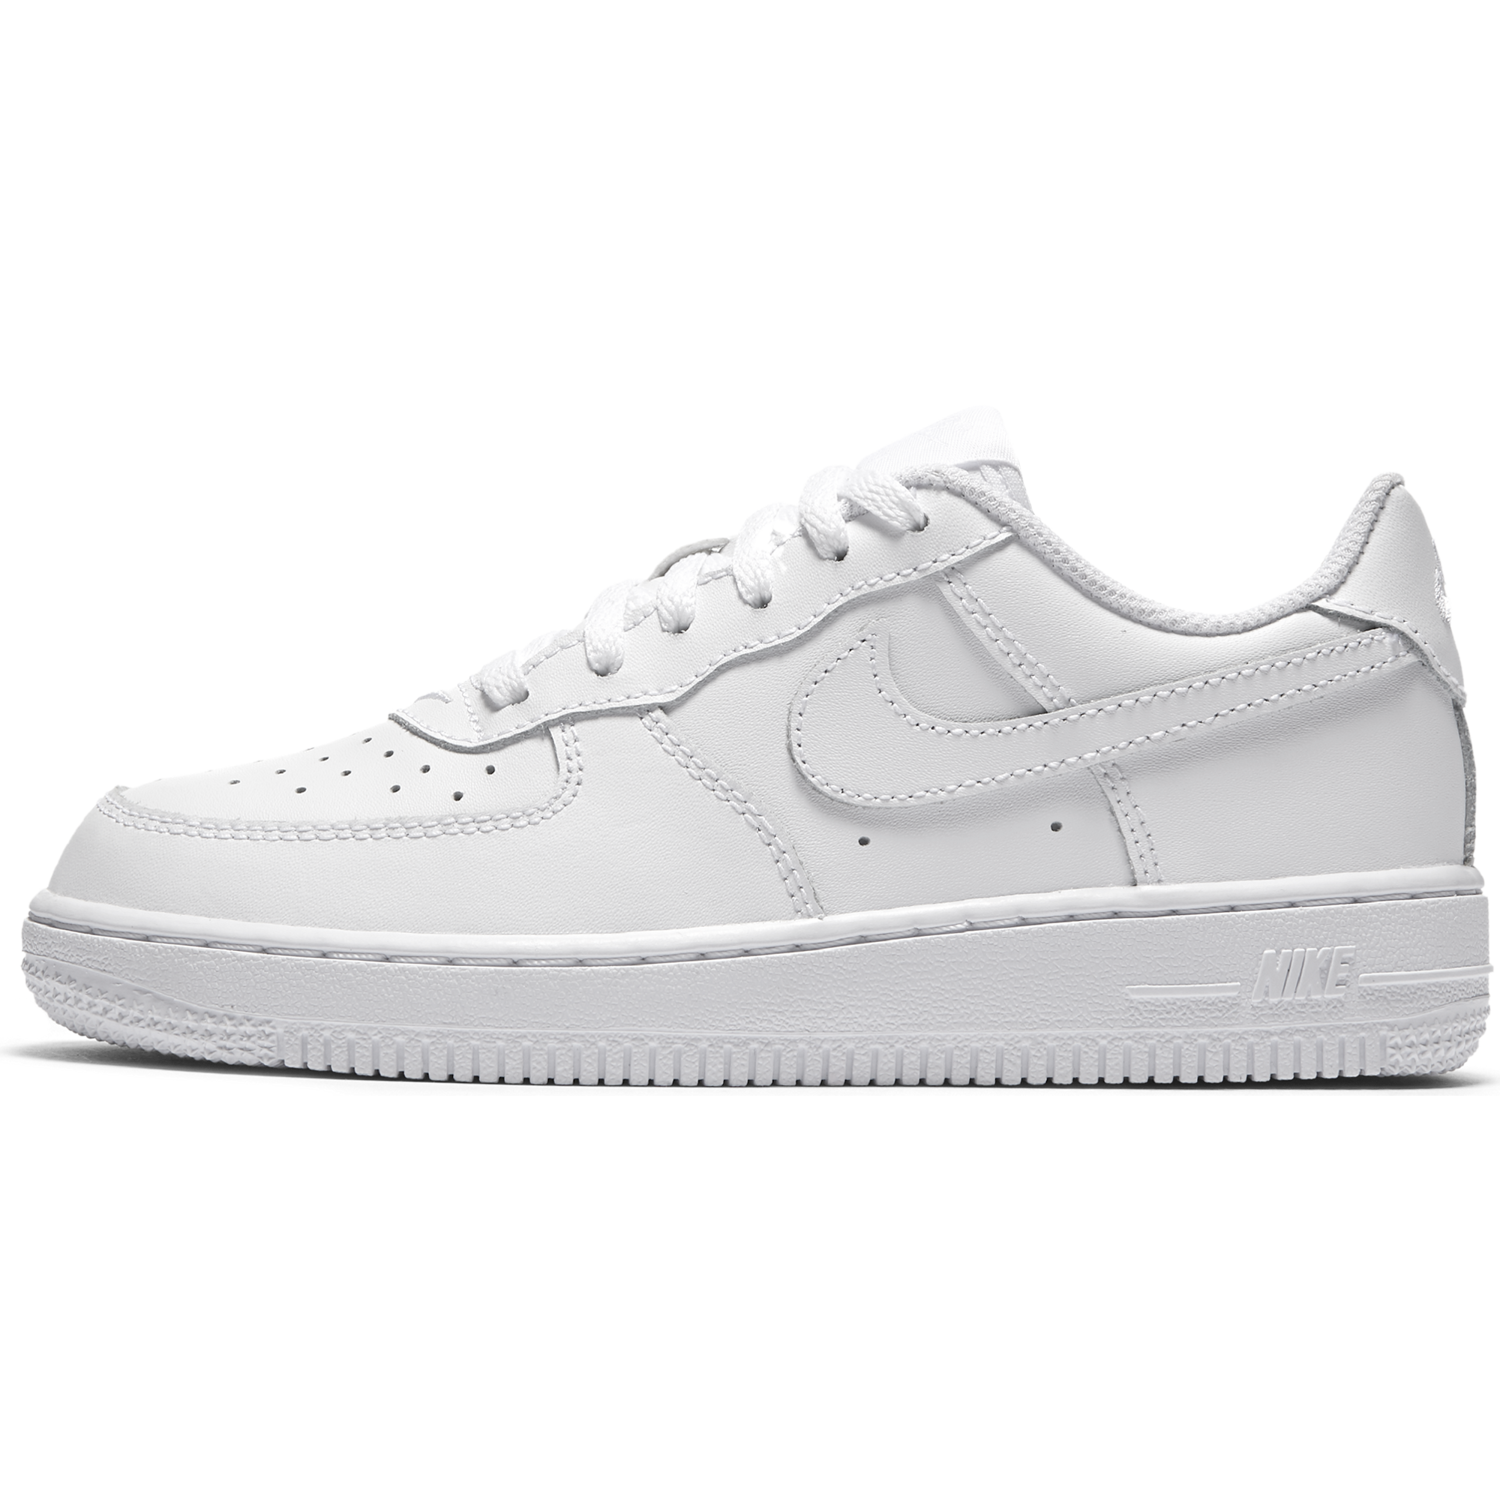 c5d8a5be97d ... BUTY JUNIOR LIFESTYLE NIKE AIR FORCE 1 314193-117 ...